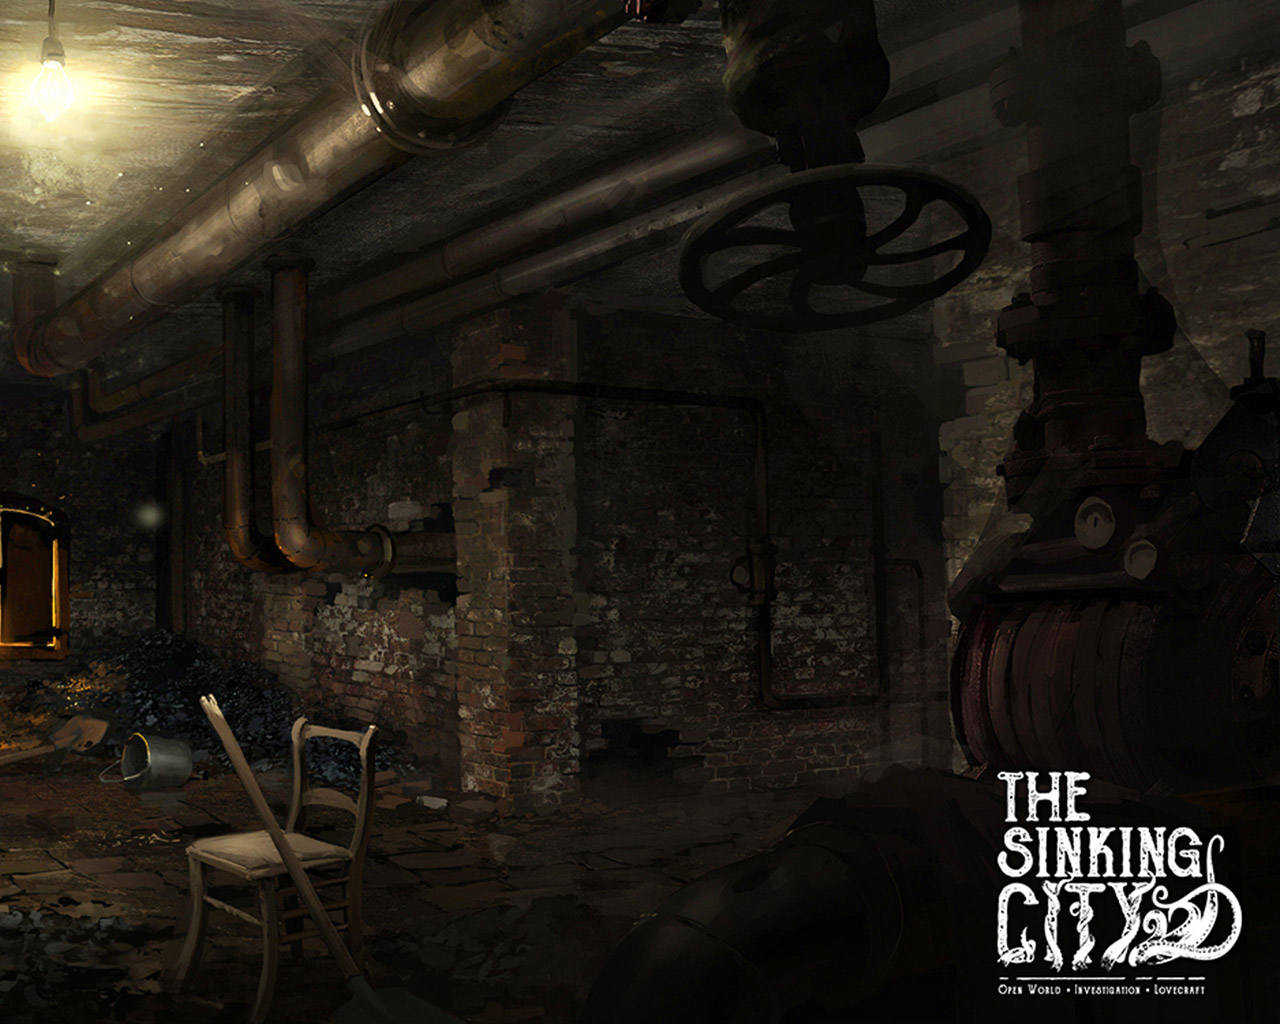 The Sinking City Wallpaper in 1280x1024